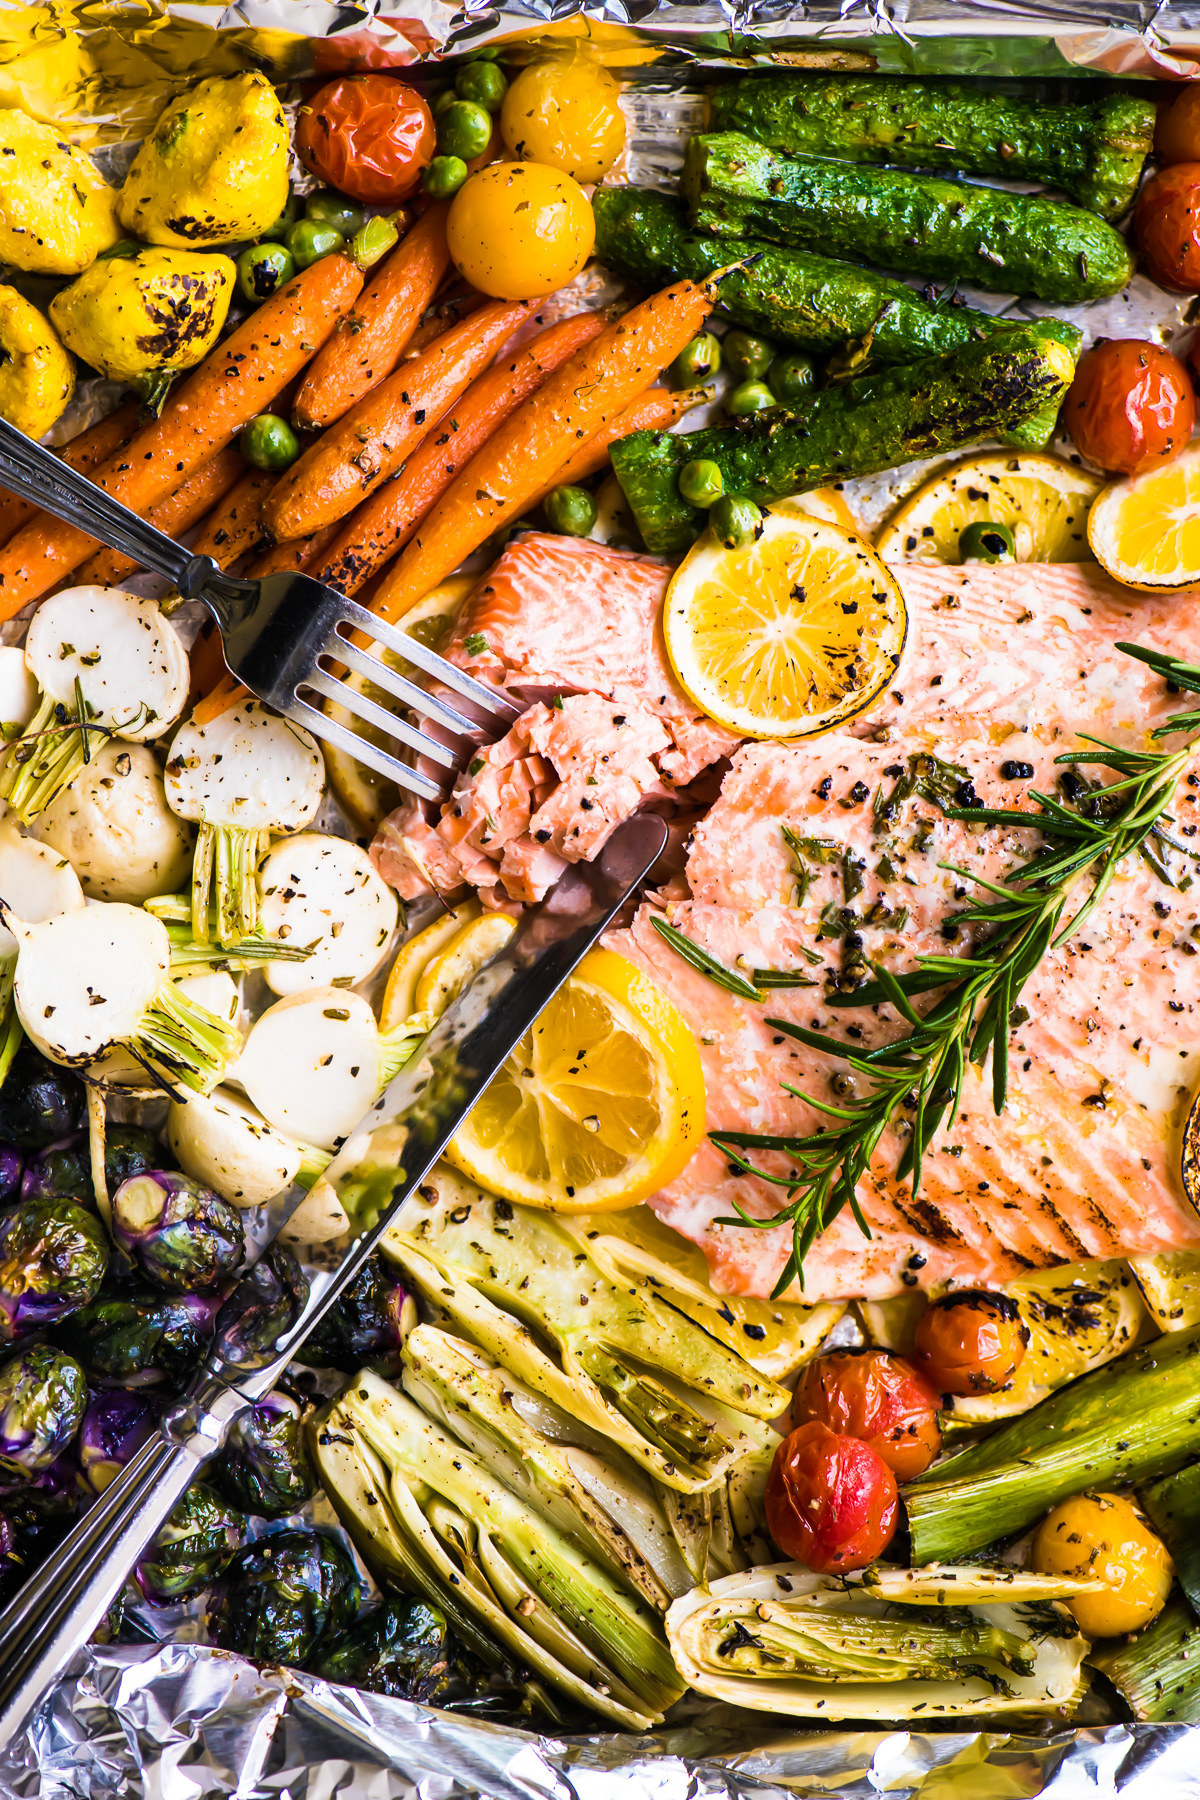 Sheet pan salmon with lots of colorful vegetables.